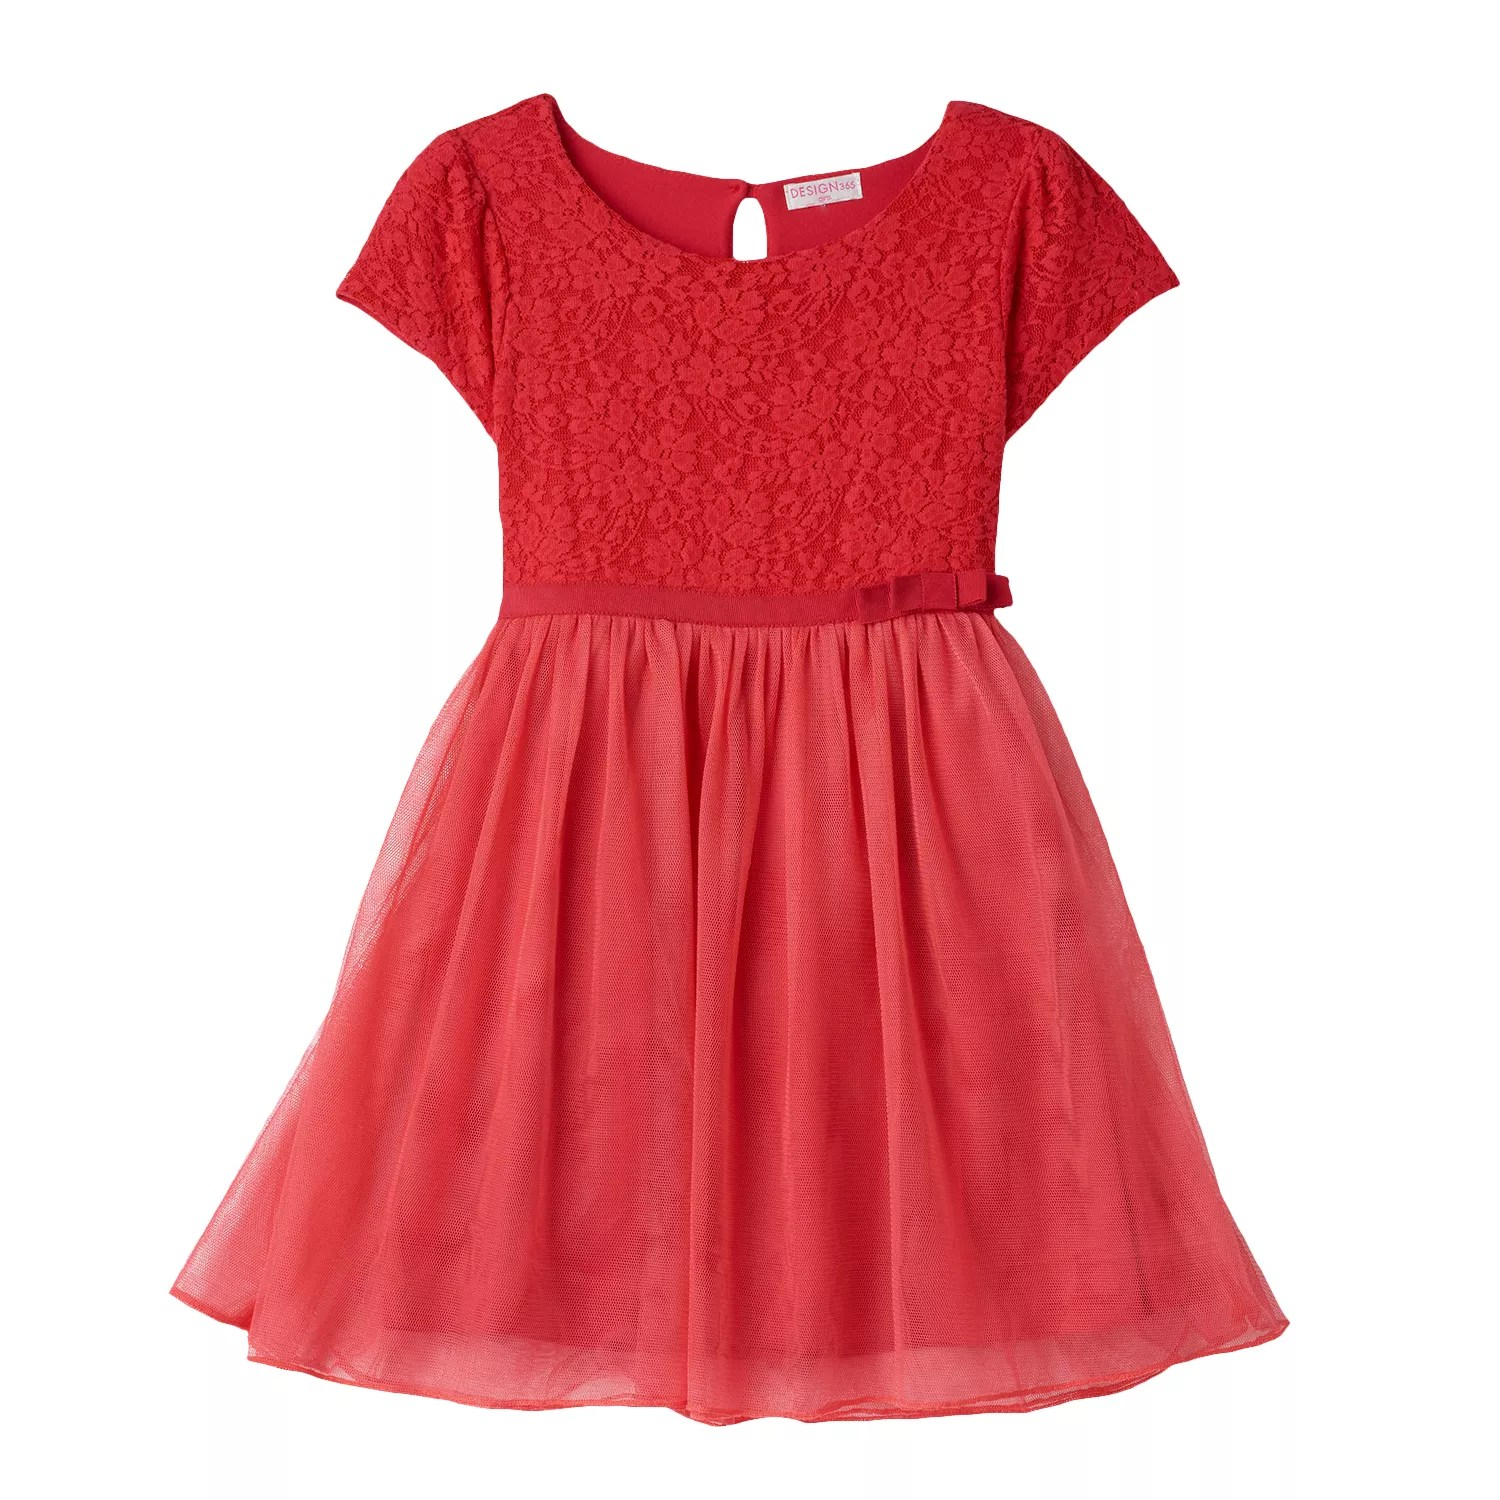 20 Kohls Dresses For Girls Pictures And Ideas On Carver Museum